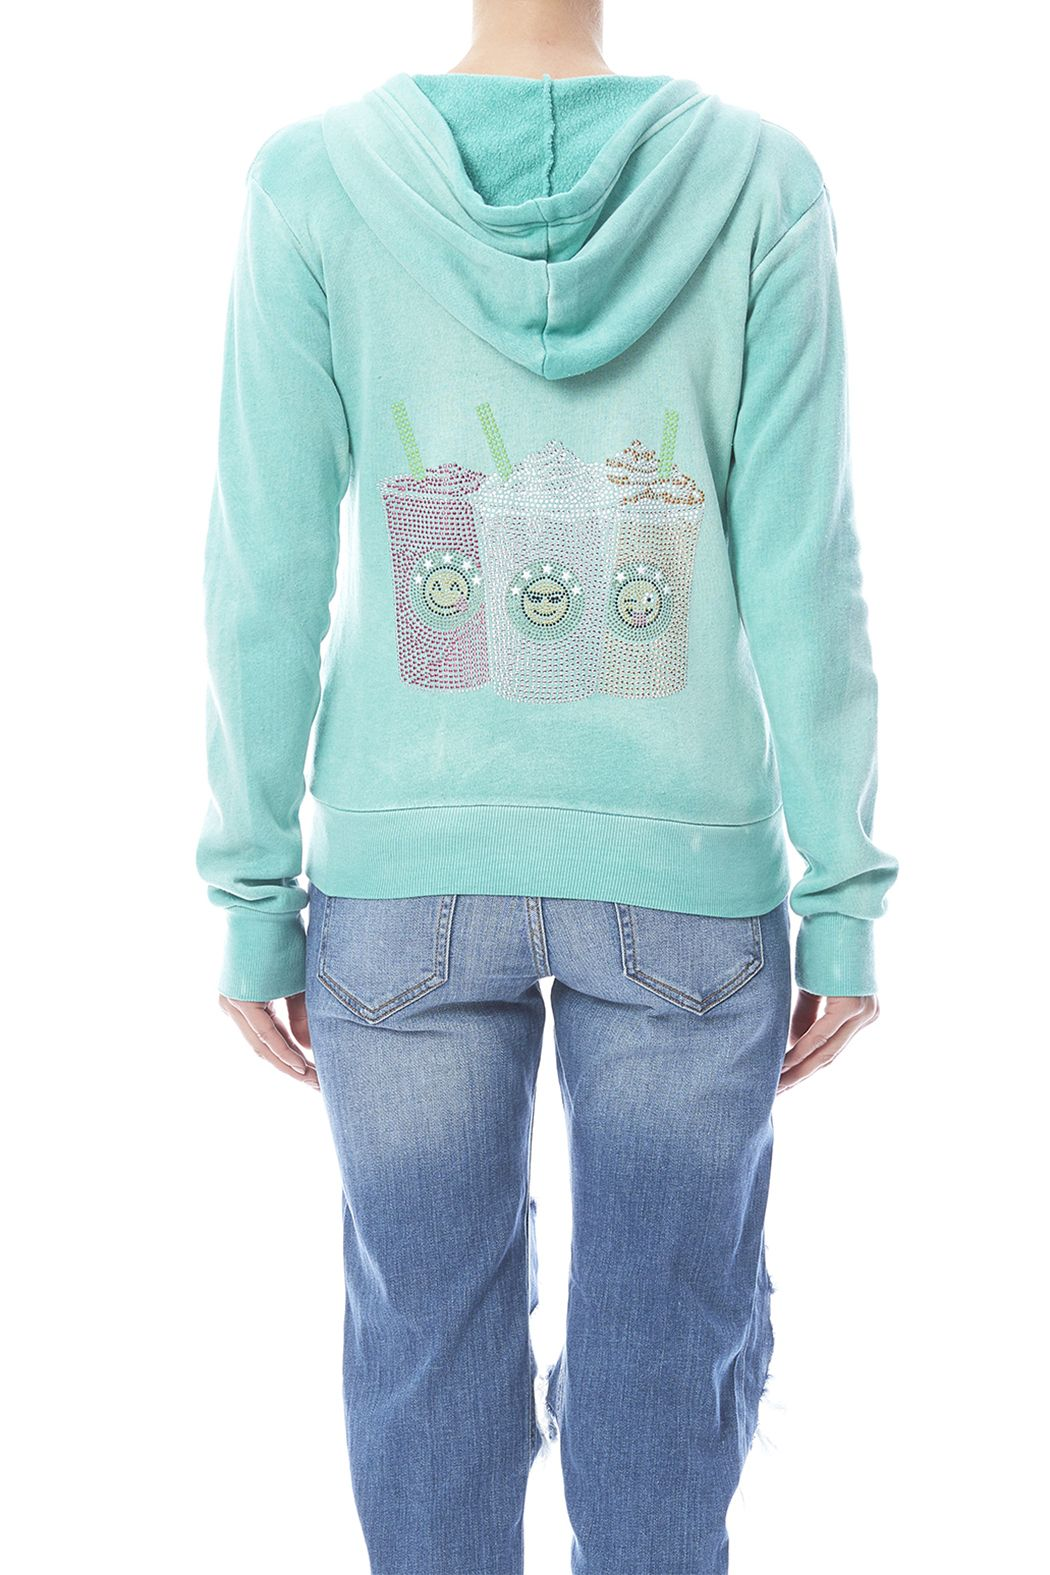 a68491dc7 Hoodie has front pockets. Cool Coffee Zip Hoodie by Butter Super Soft.  Clothing - Sweaters - Sweatshirts & Hoodies Long Island